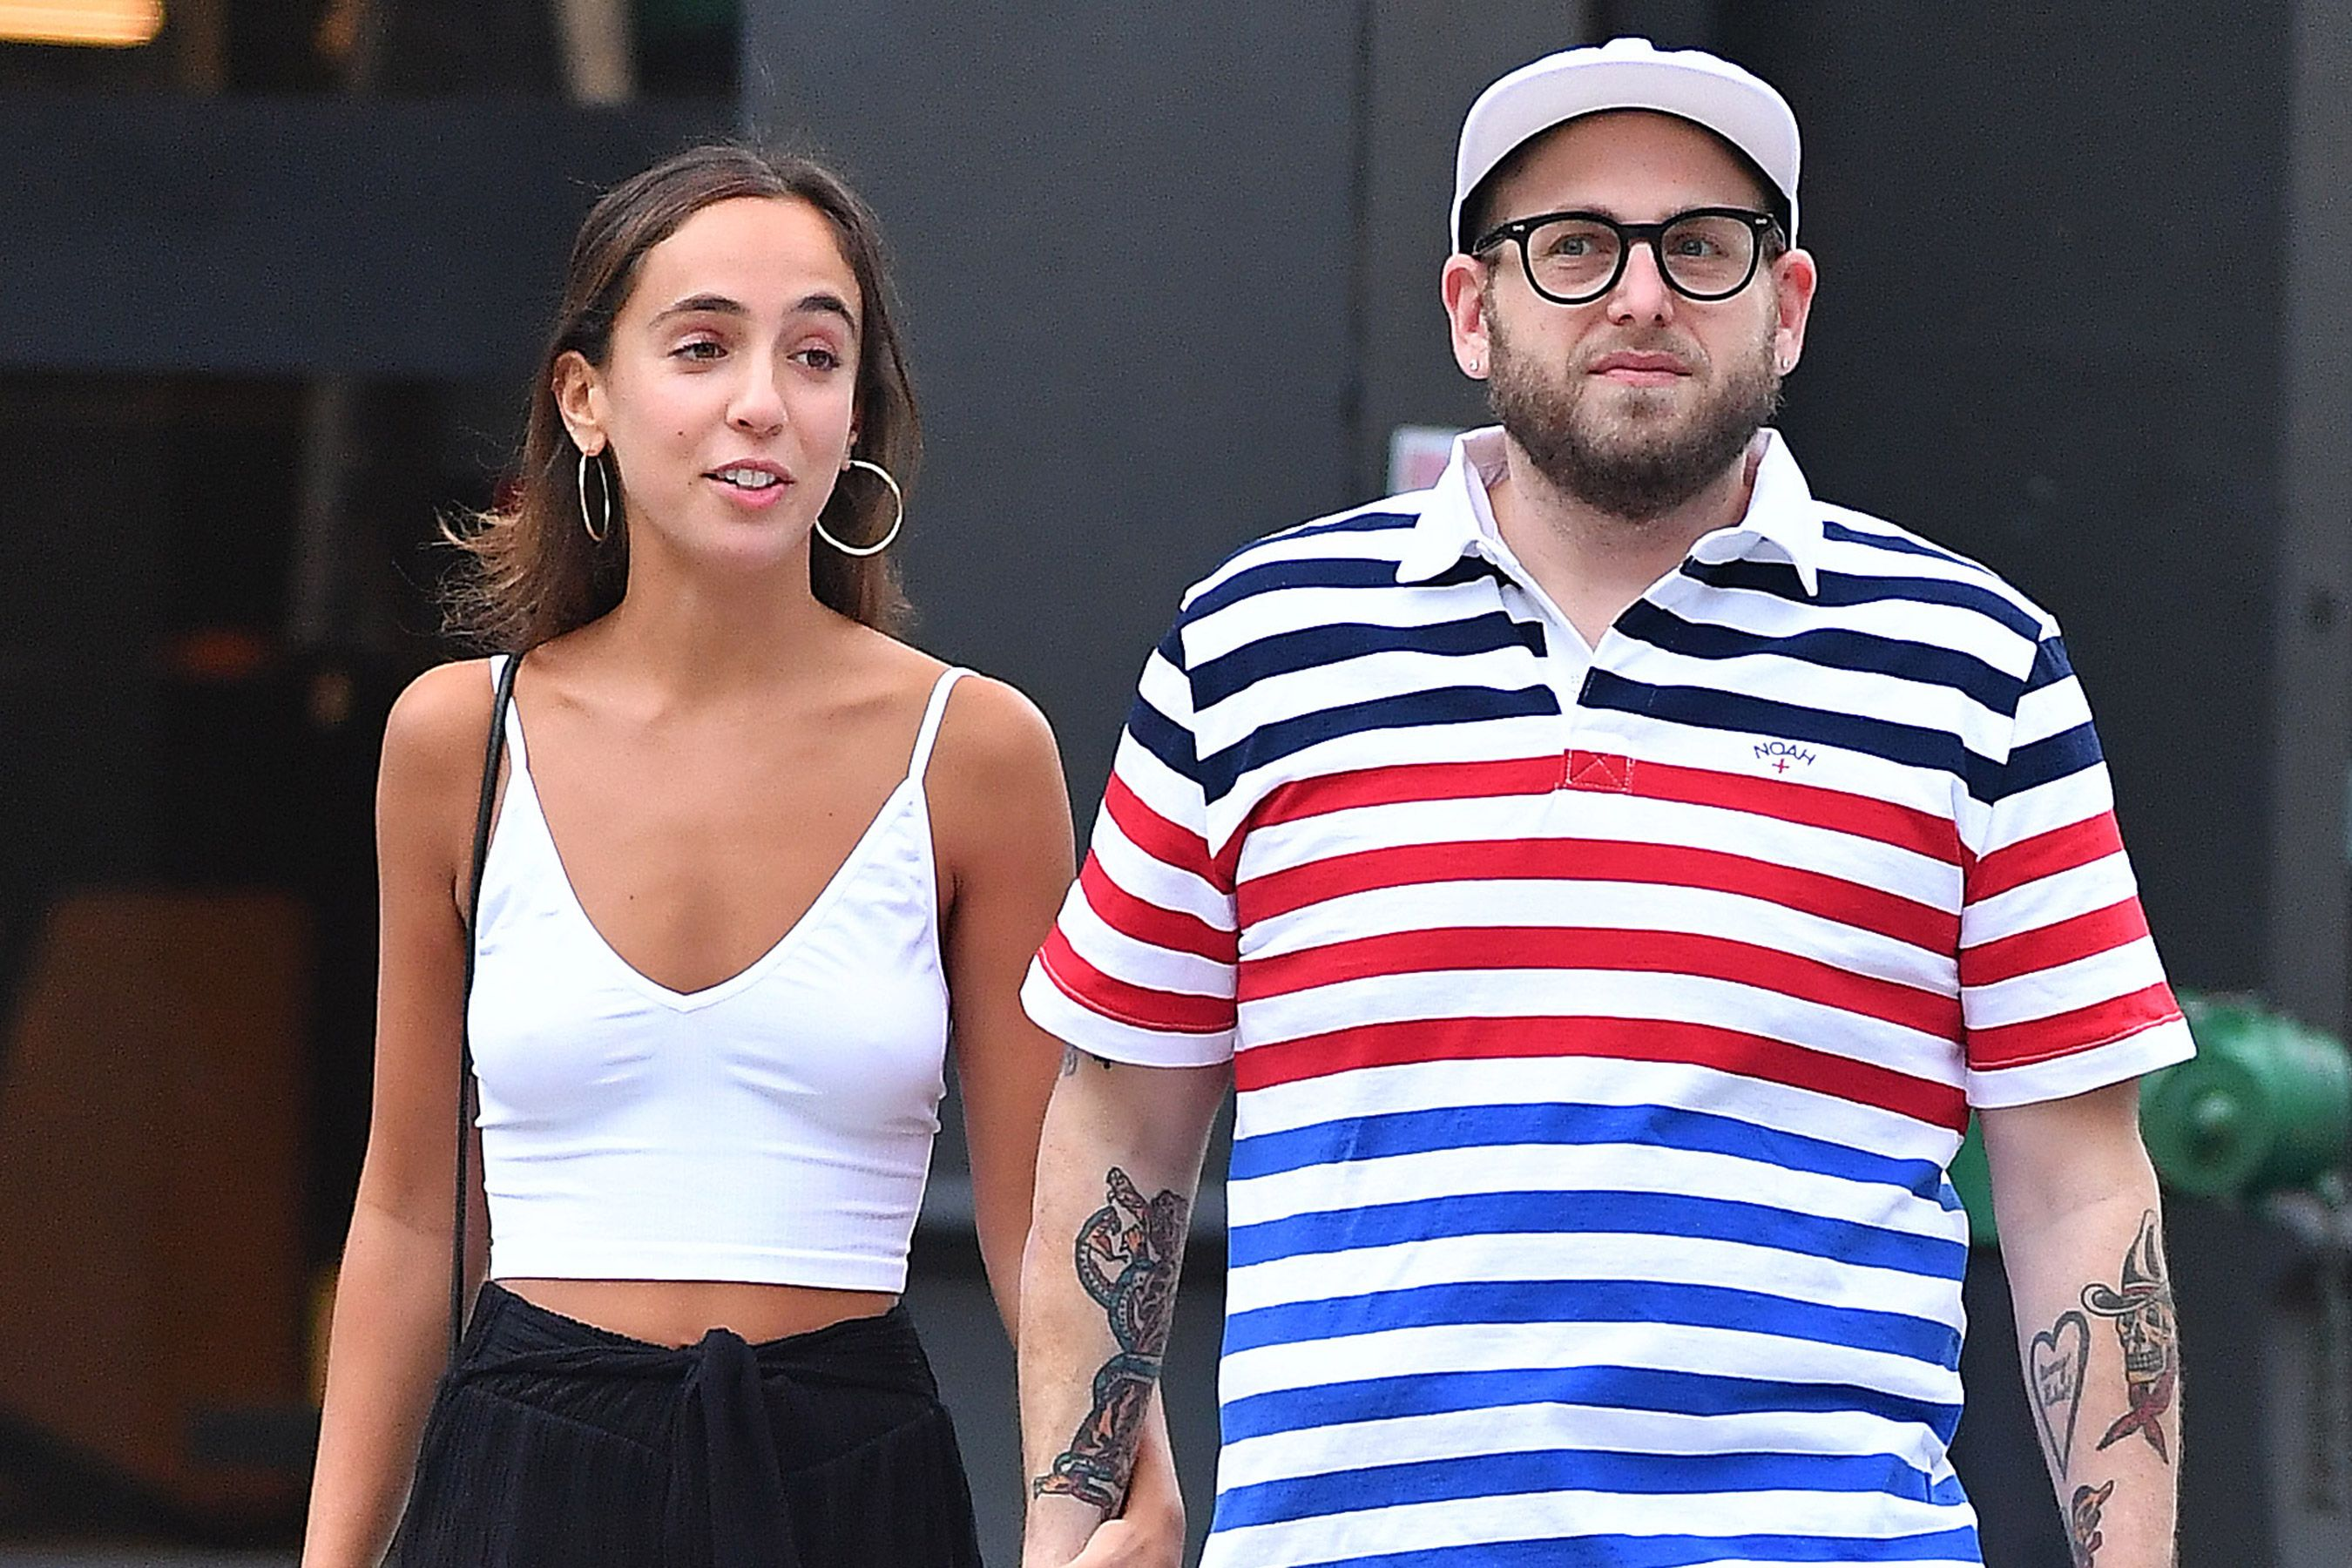 Check out interesting facts about Jonah Hill's girlfriend